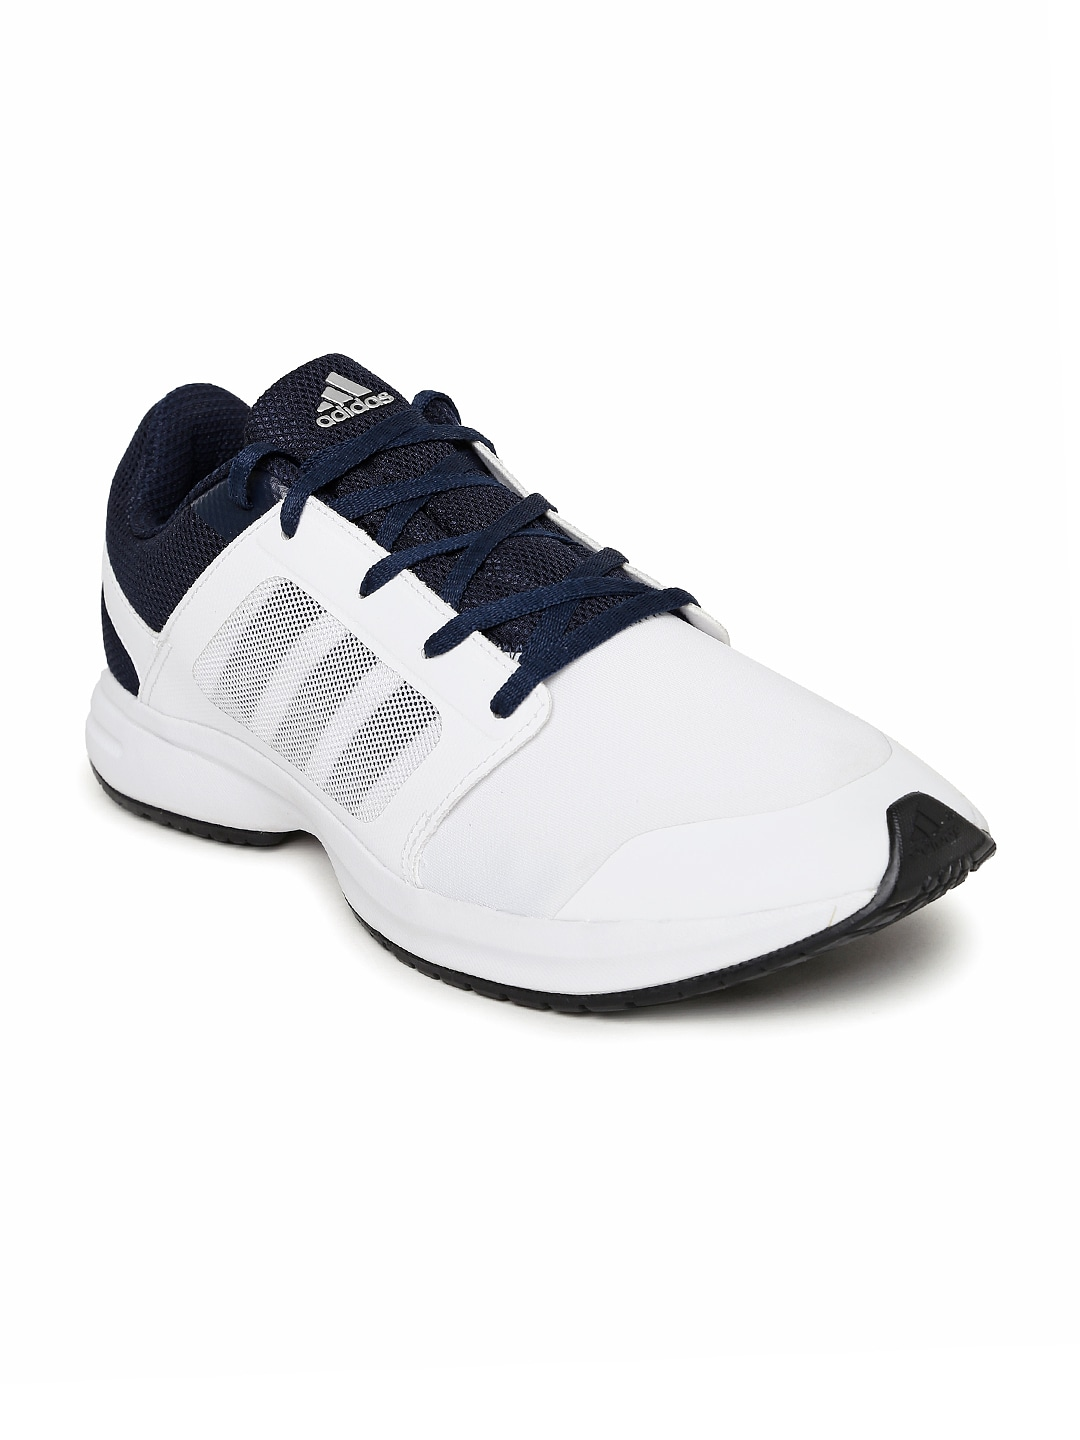 9eb246b1f Adidas ba2809 Men White And Navy Kray 1 0 Running Shoes- Price in India